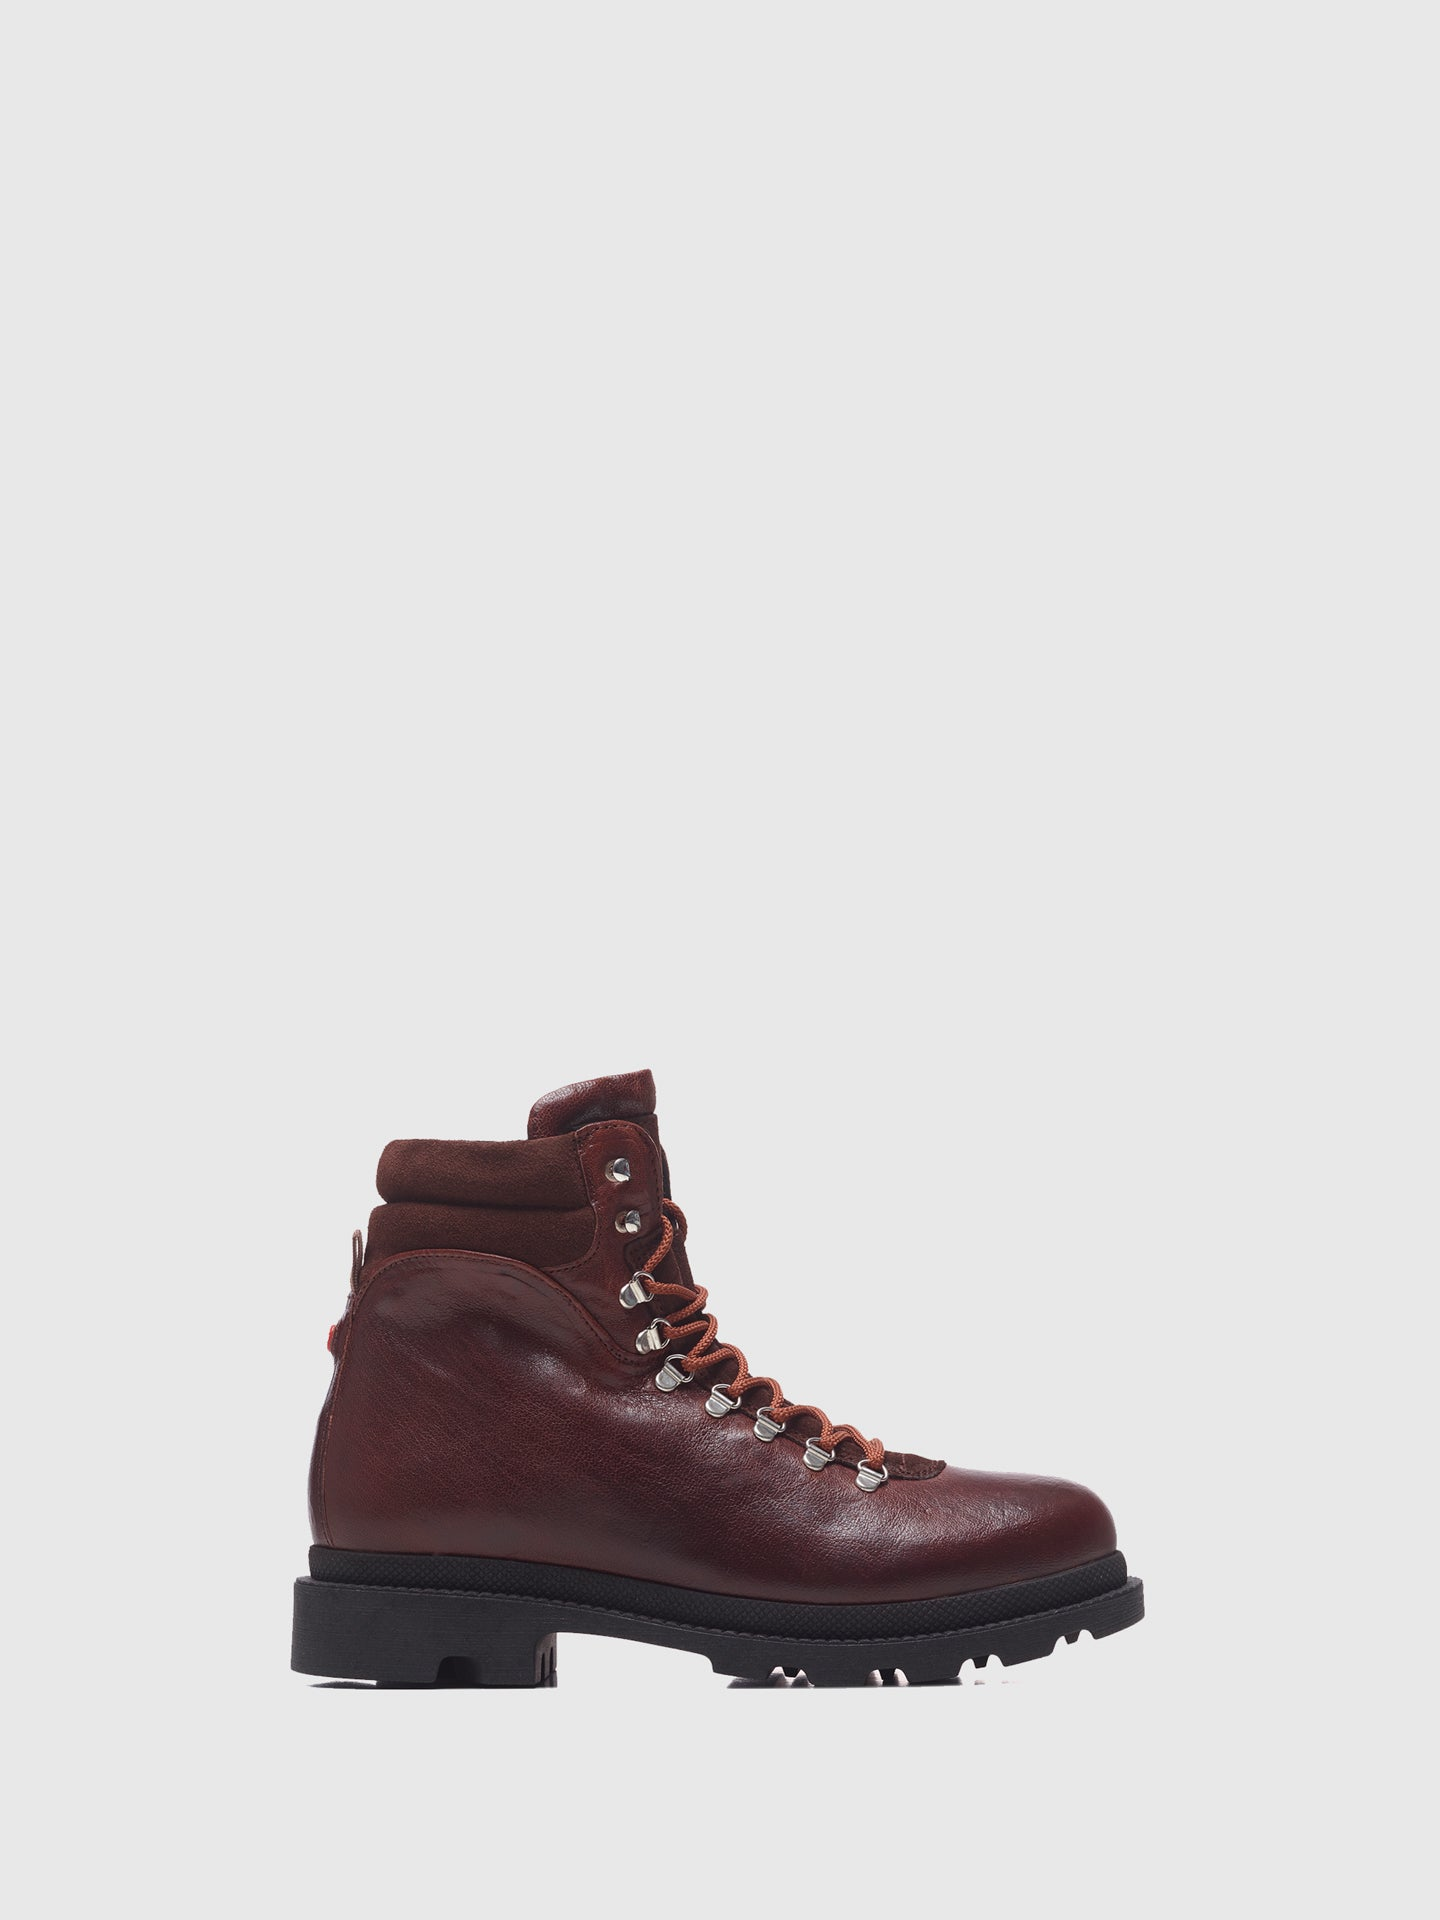 Nobrand Brown Lace-up Boots